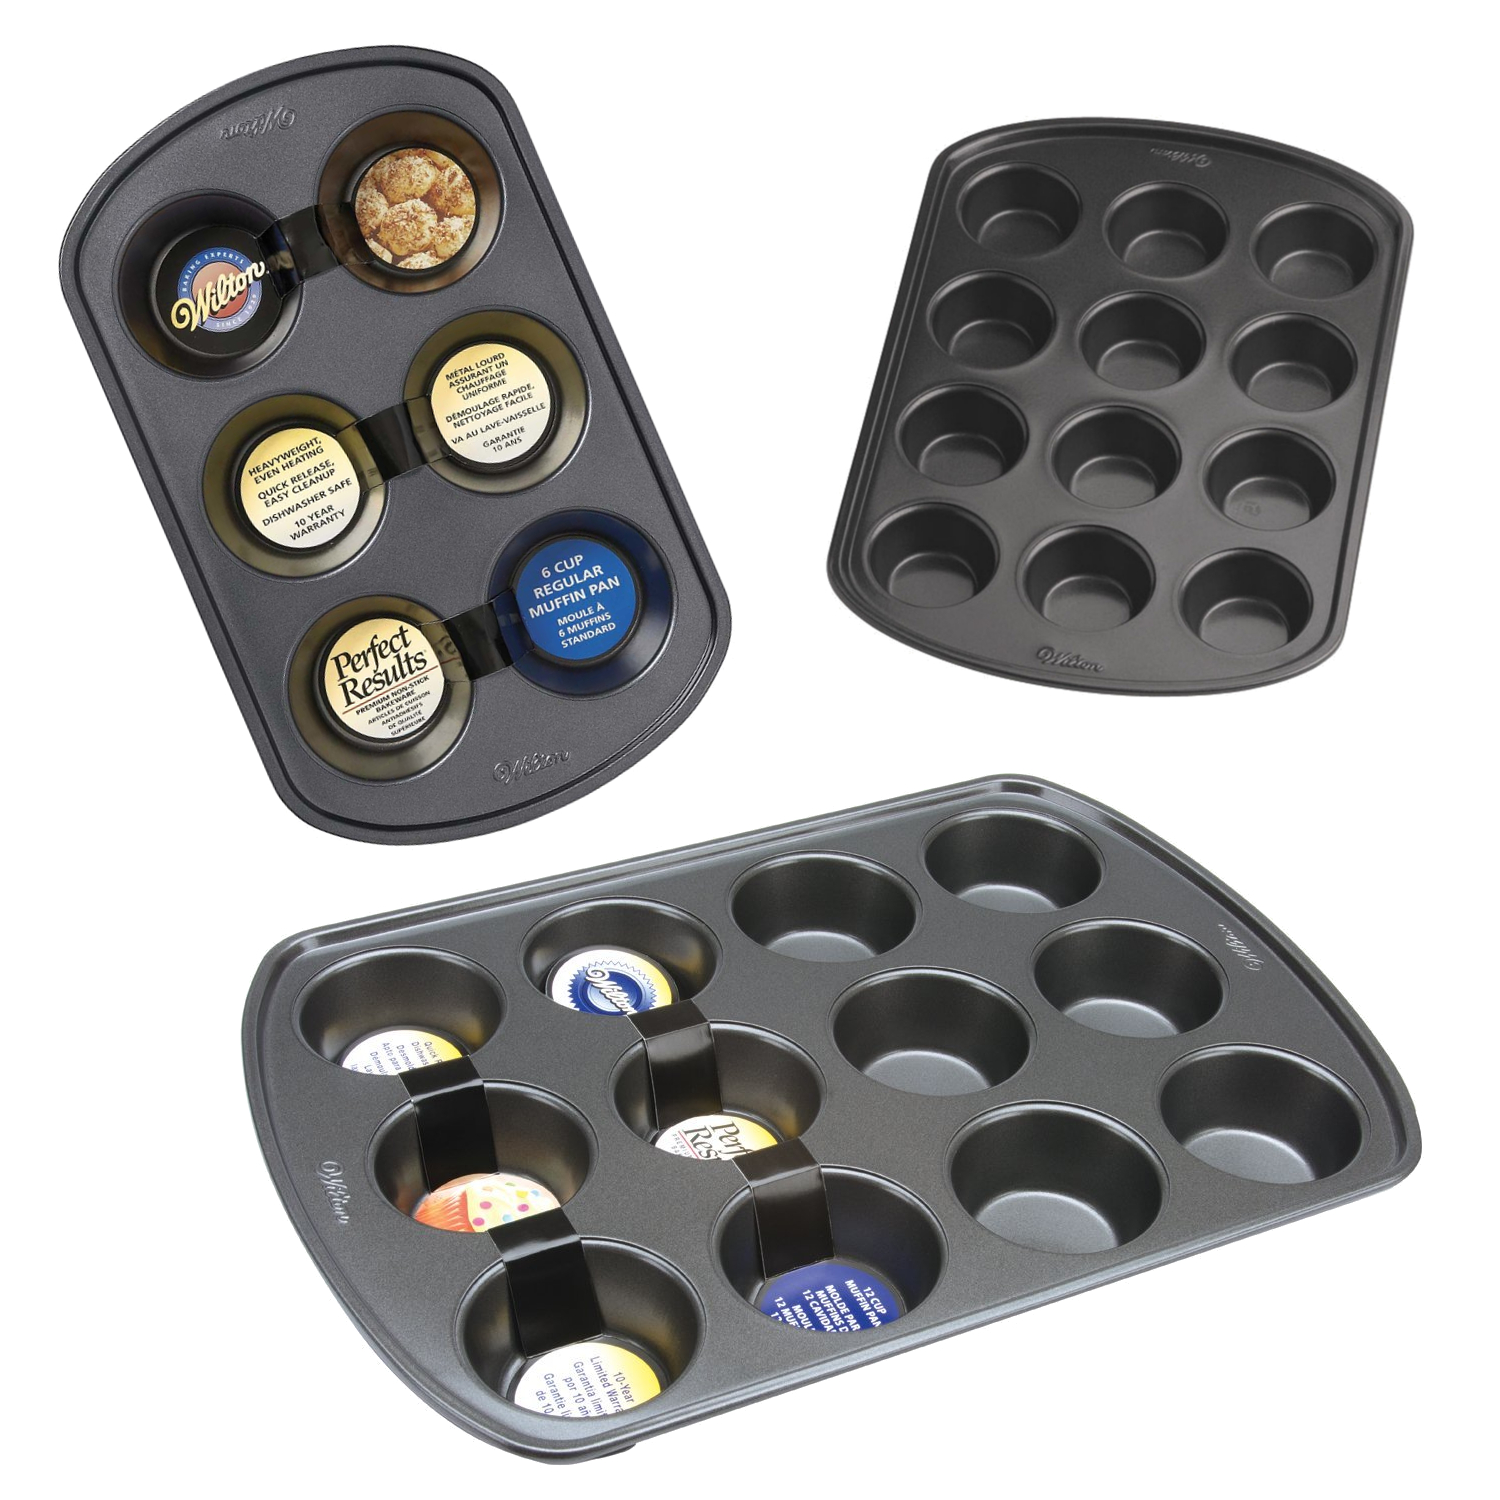 Wilton Muffin and Cupcake Perfect Result Non-Stick Bakeware Baking Tin Trays